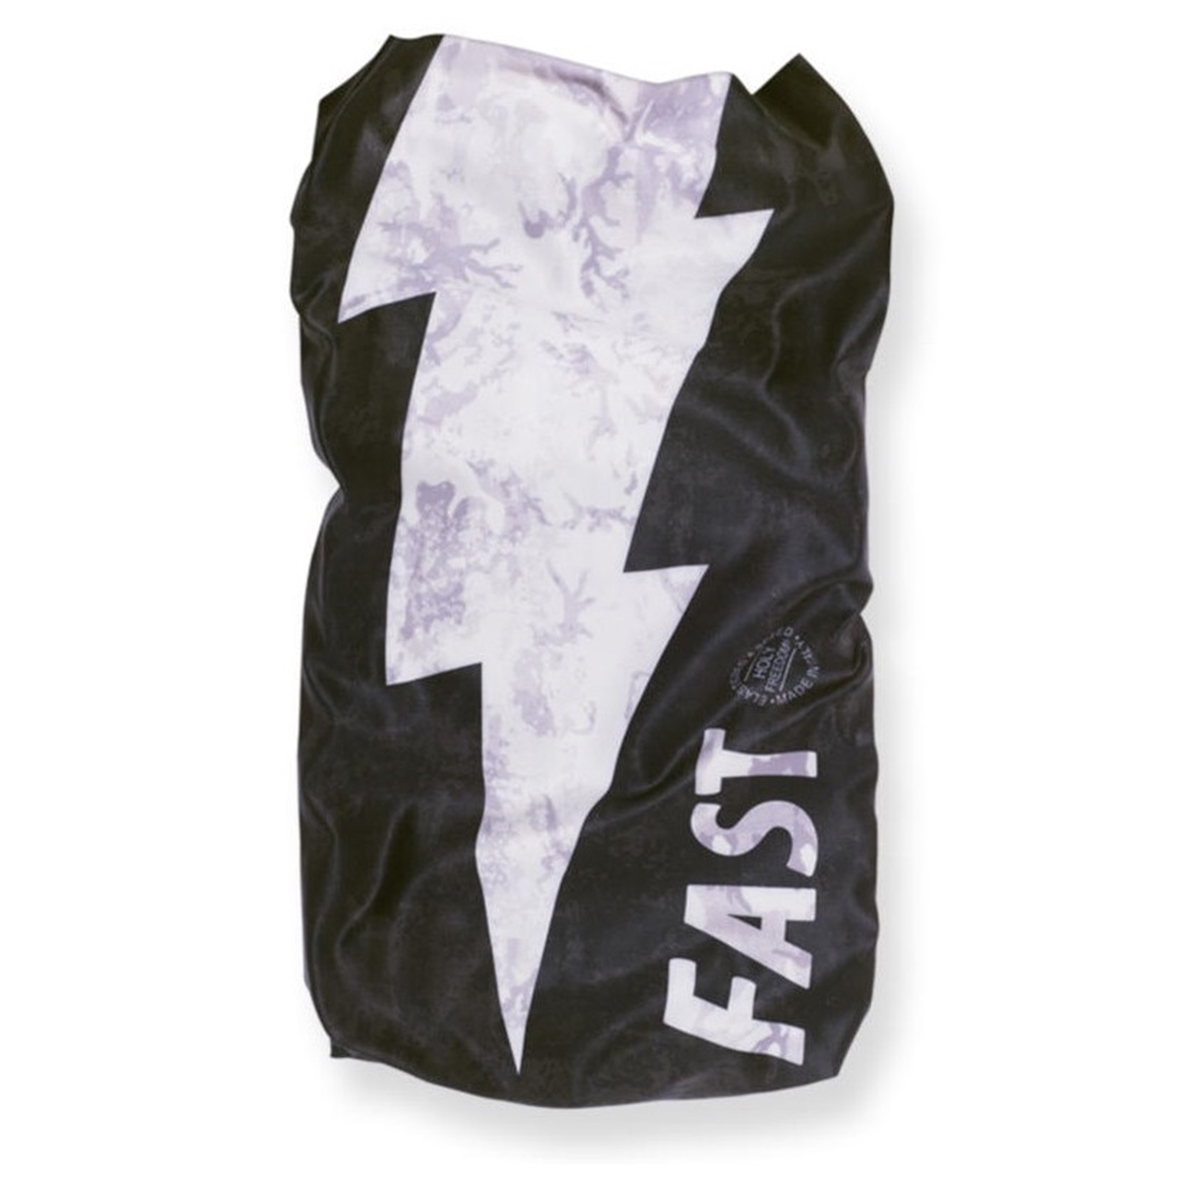 Product Image for 'Neck Scarf / Tube HOLY FREEDOM Fast Elasticizzato StretchTitle'